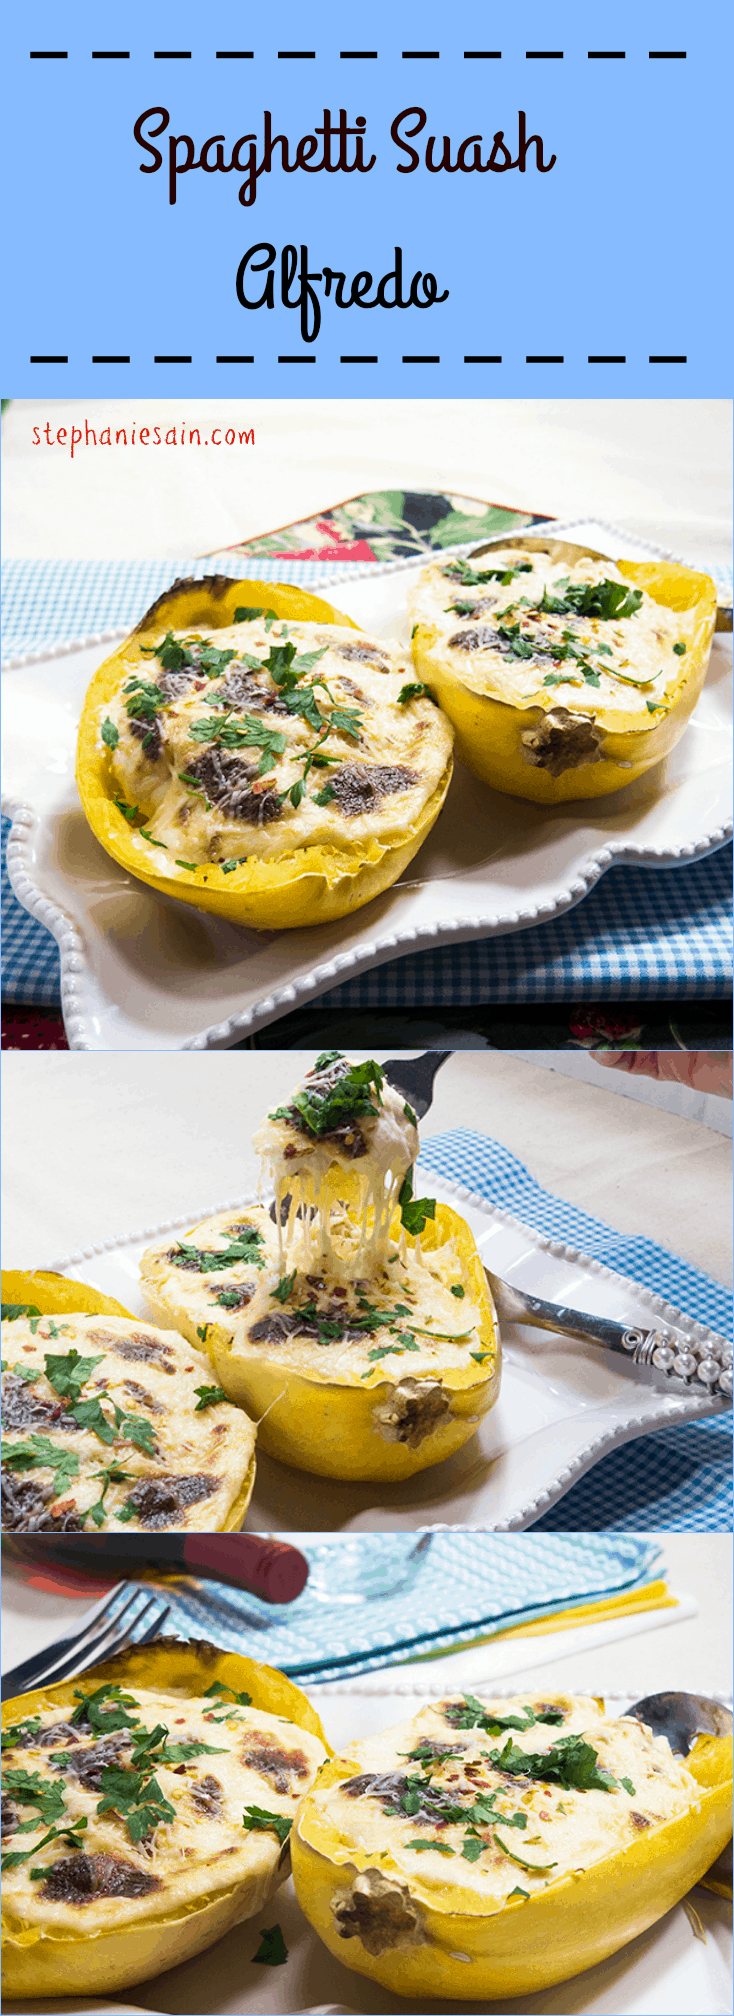 Spaghetti Squash Allfredo is a tasty, healthy, lower carb option for alfredo. Vegetarian and Gluten Free.